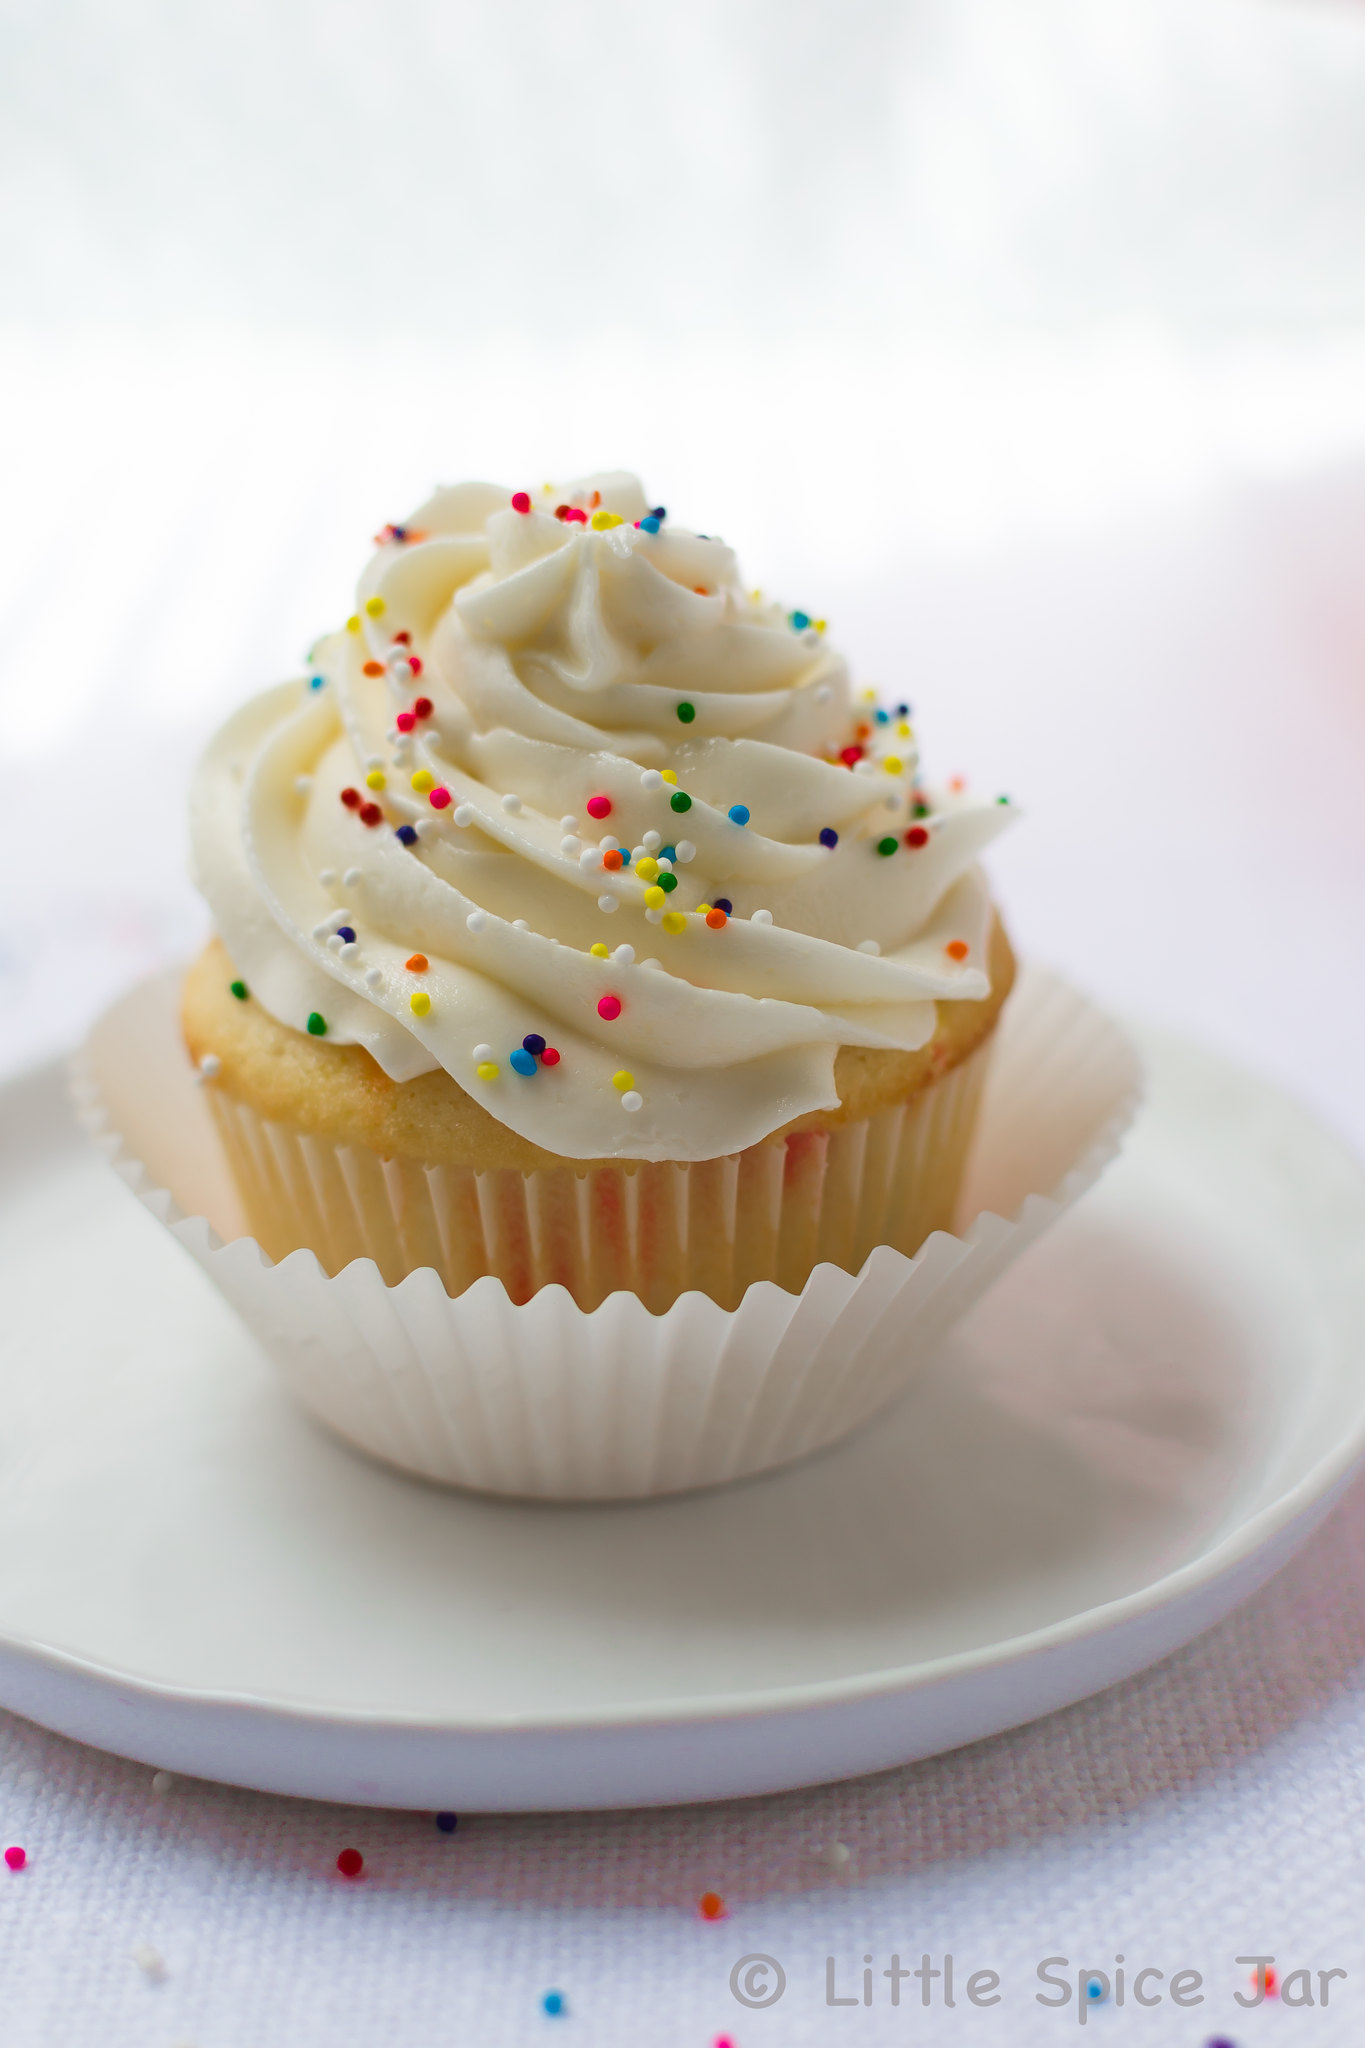 prepared funfetti cupcake with whipped topping and sprinkles on white plate on white surface